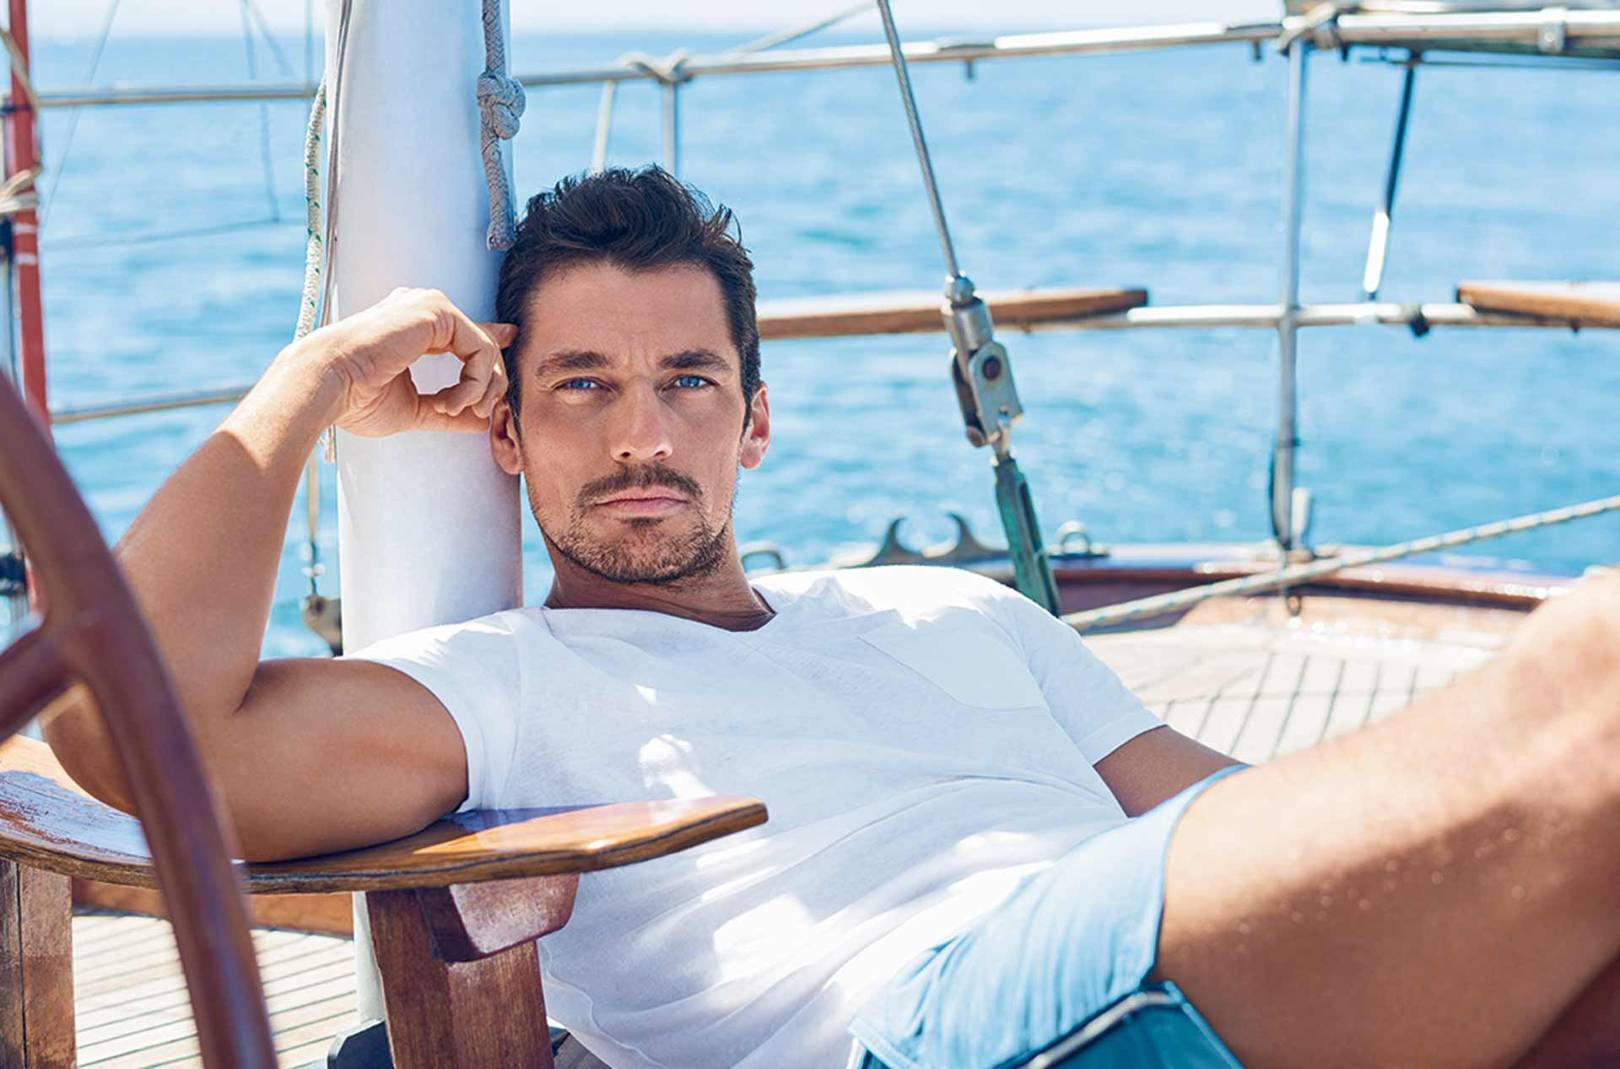 8480c103433ec Your first look at David Gandy's new beachwear line for M&S | Marks &  Spencer autograph swimwear 2017 | British GQ